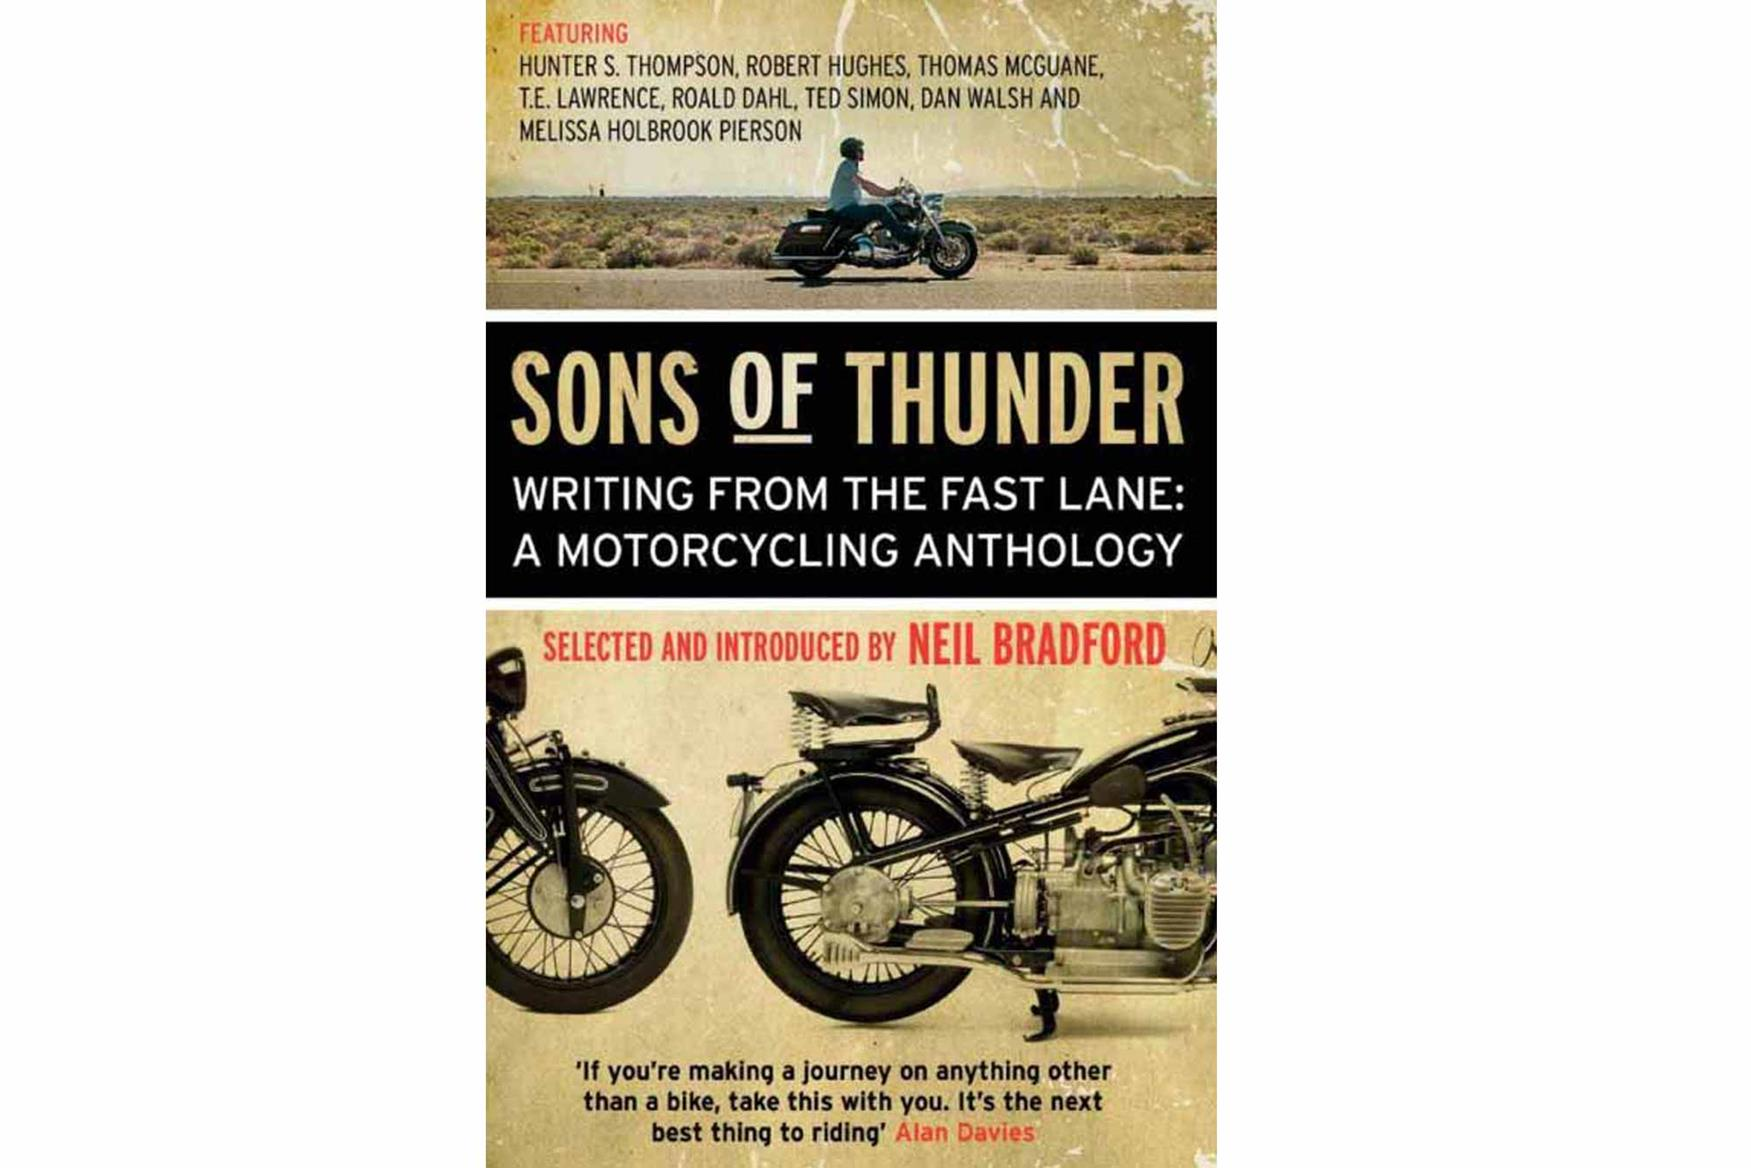 Sons of Thunder: A Motorcycling Anthology